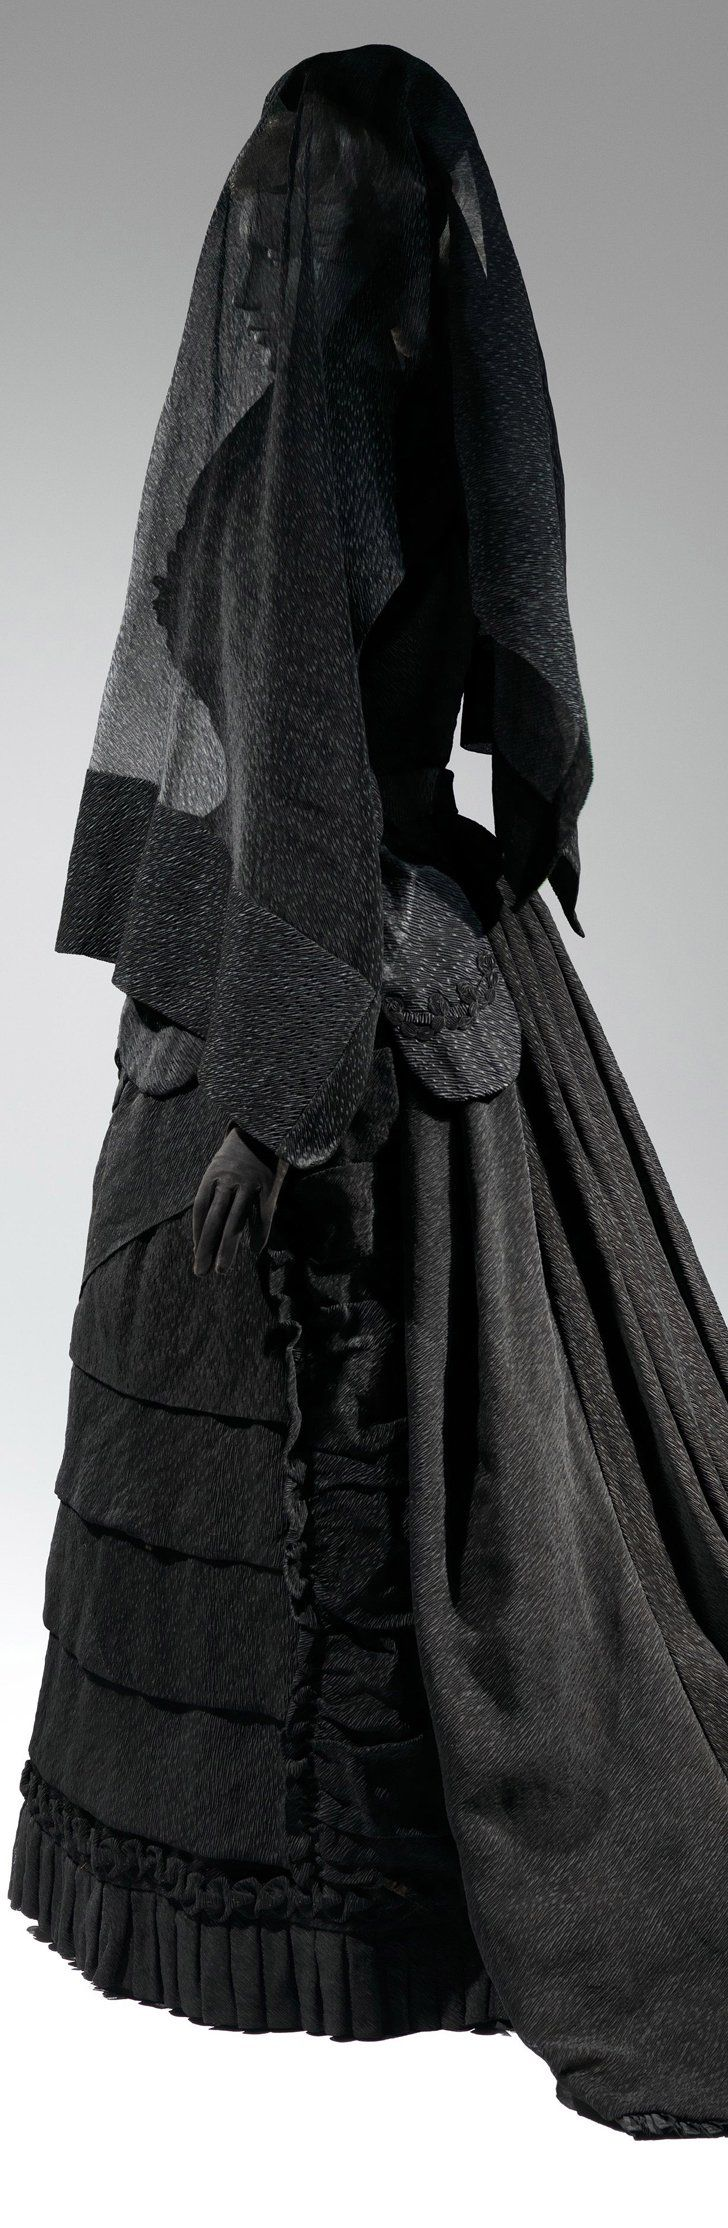 Is Death Having a Fashion Moment?